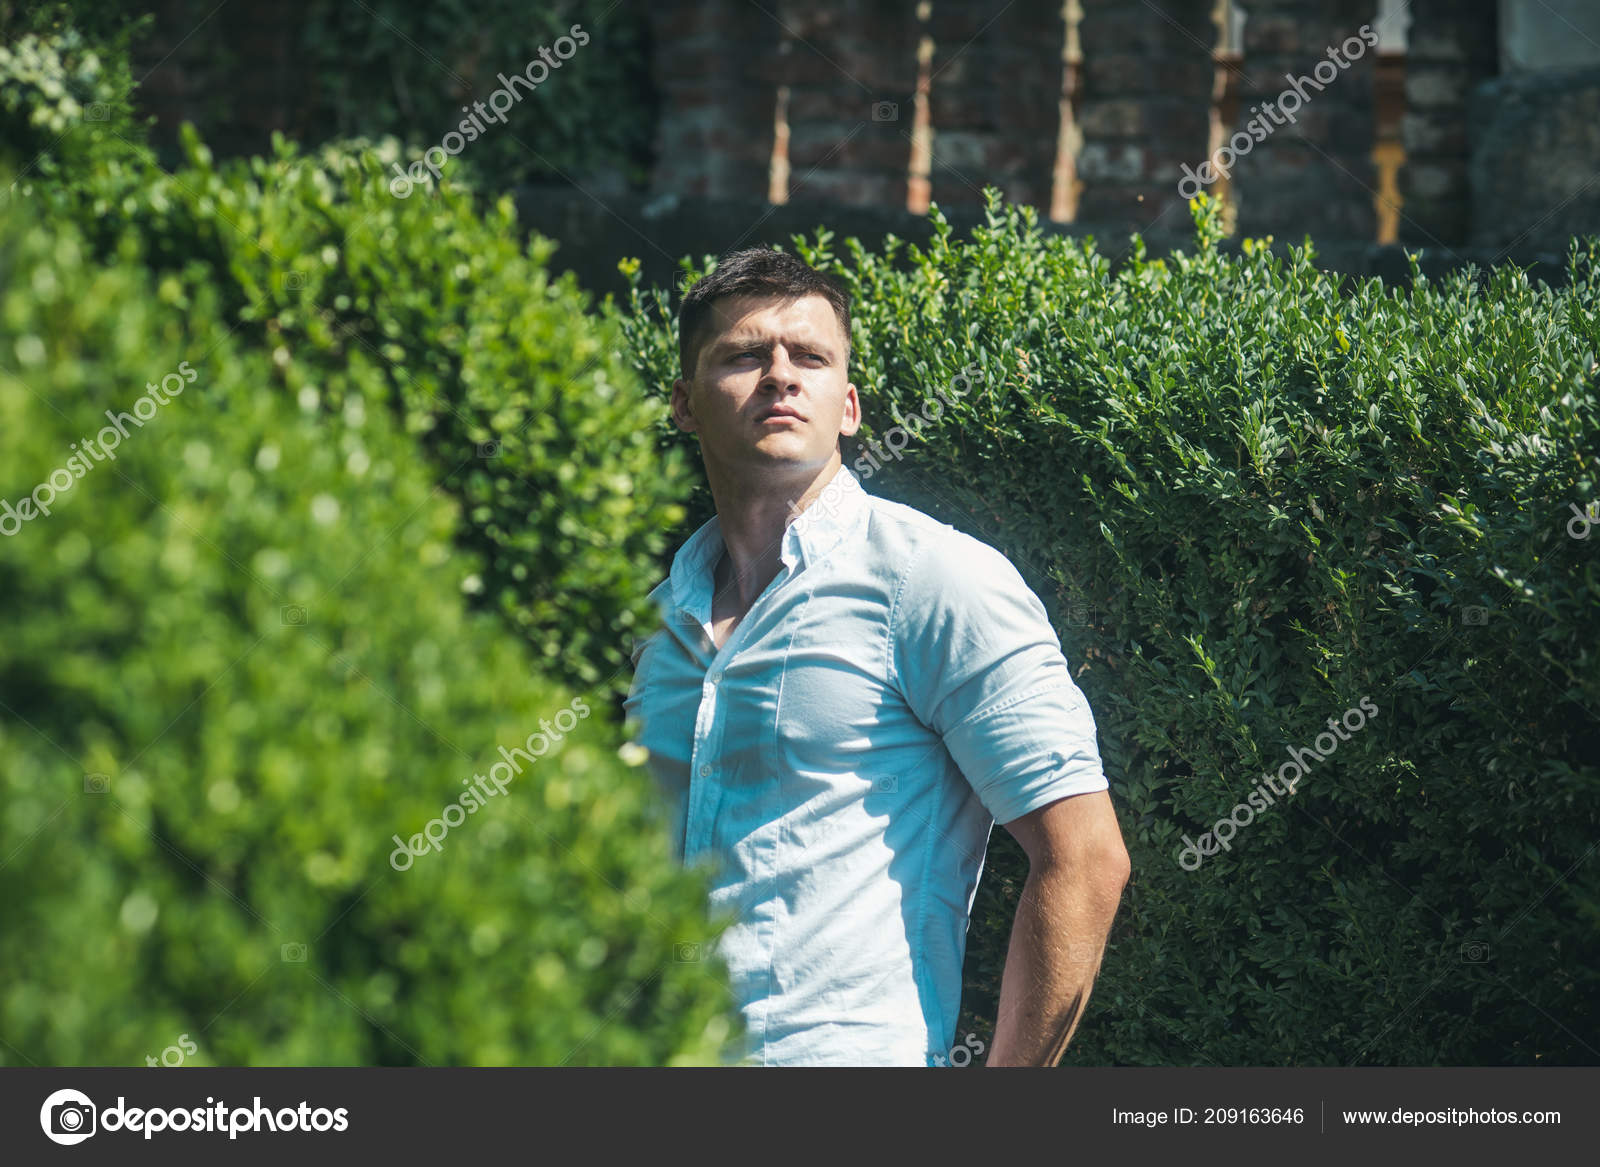 bb1809c5d0 Handsome guy on summer vacation. Man enjoy summer day in park. Macho with  young face. Model wear fashionable shirt on sunny outdoor. Youth fashion  concept.